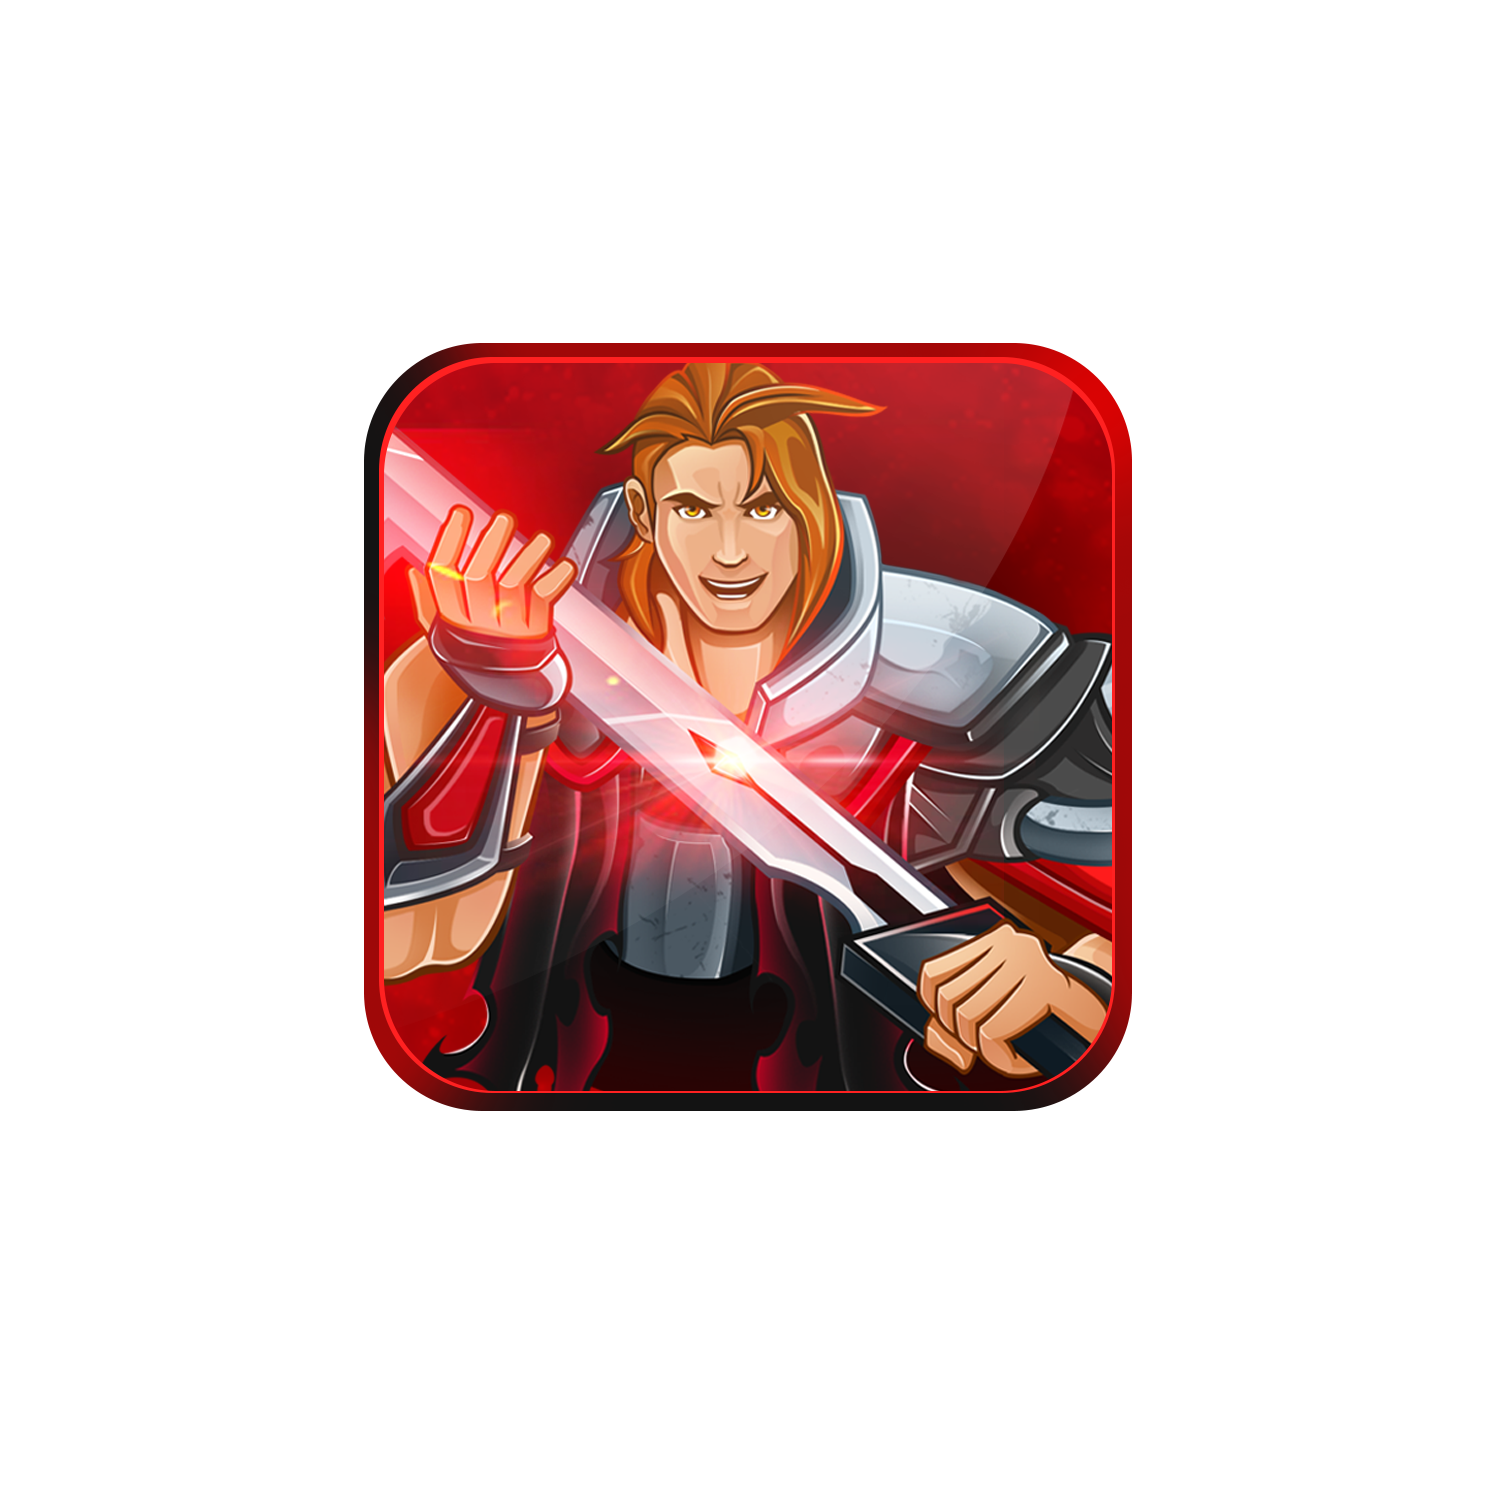 Icon design for our new gaming news app (Newsfusion)